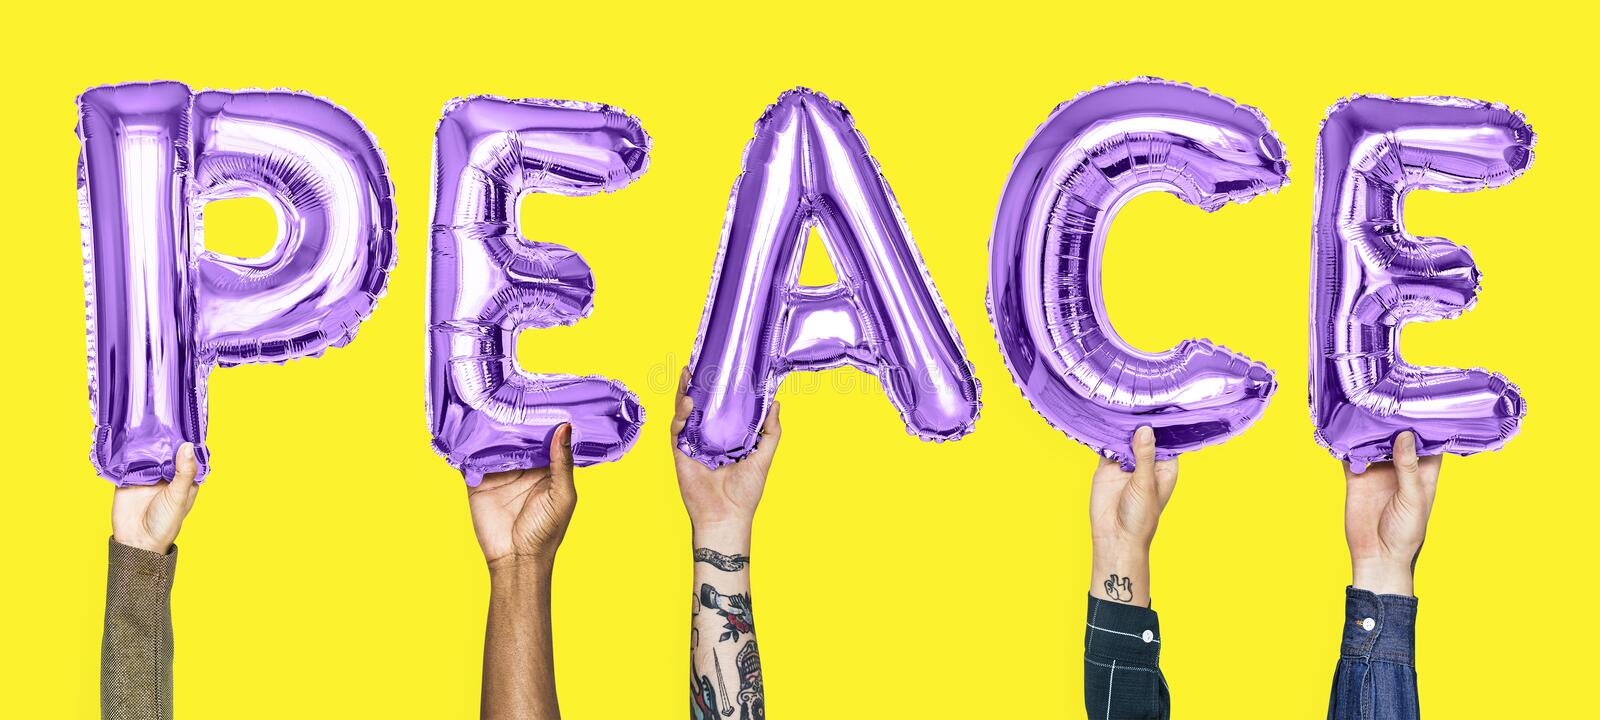 Purple alphabet balloons forming the word peace stock image